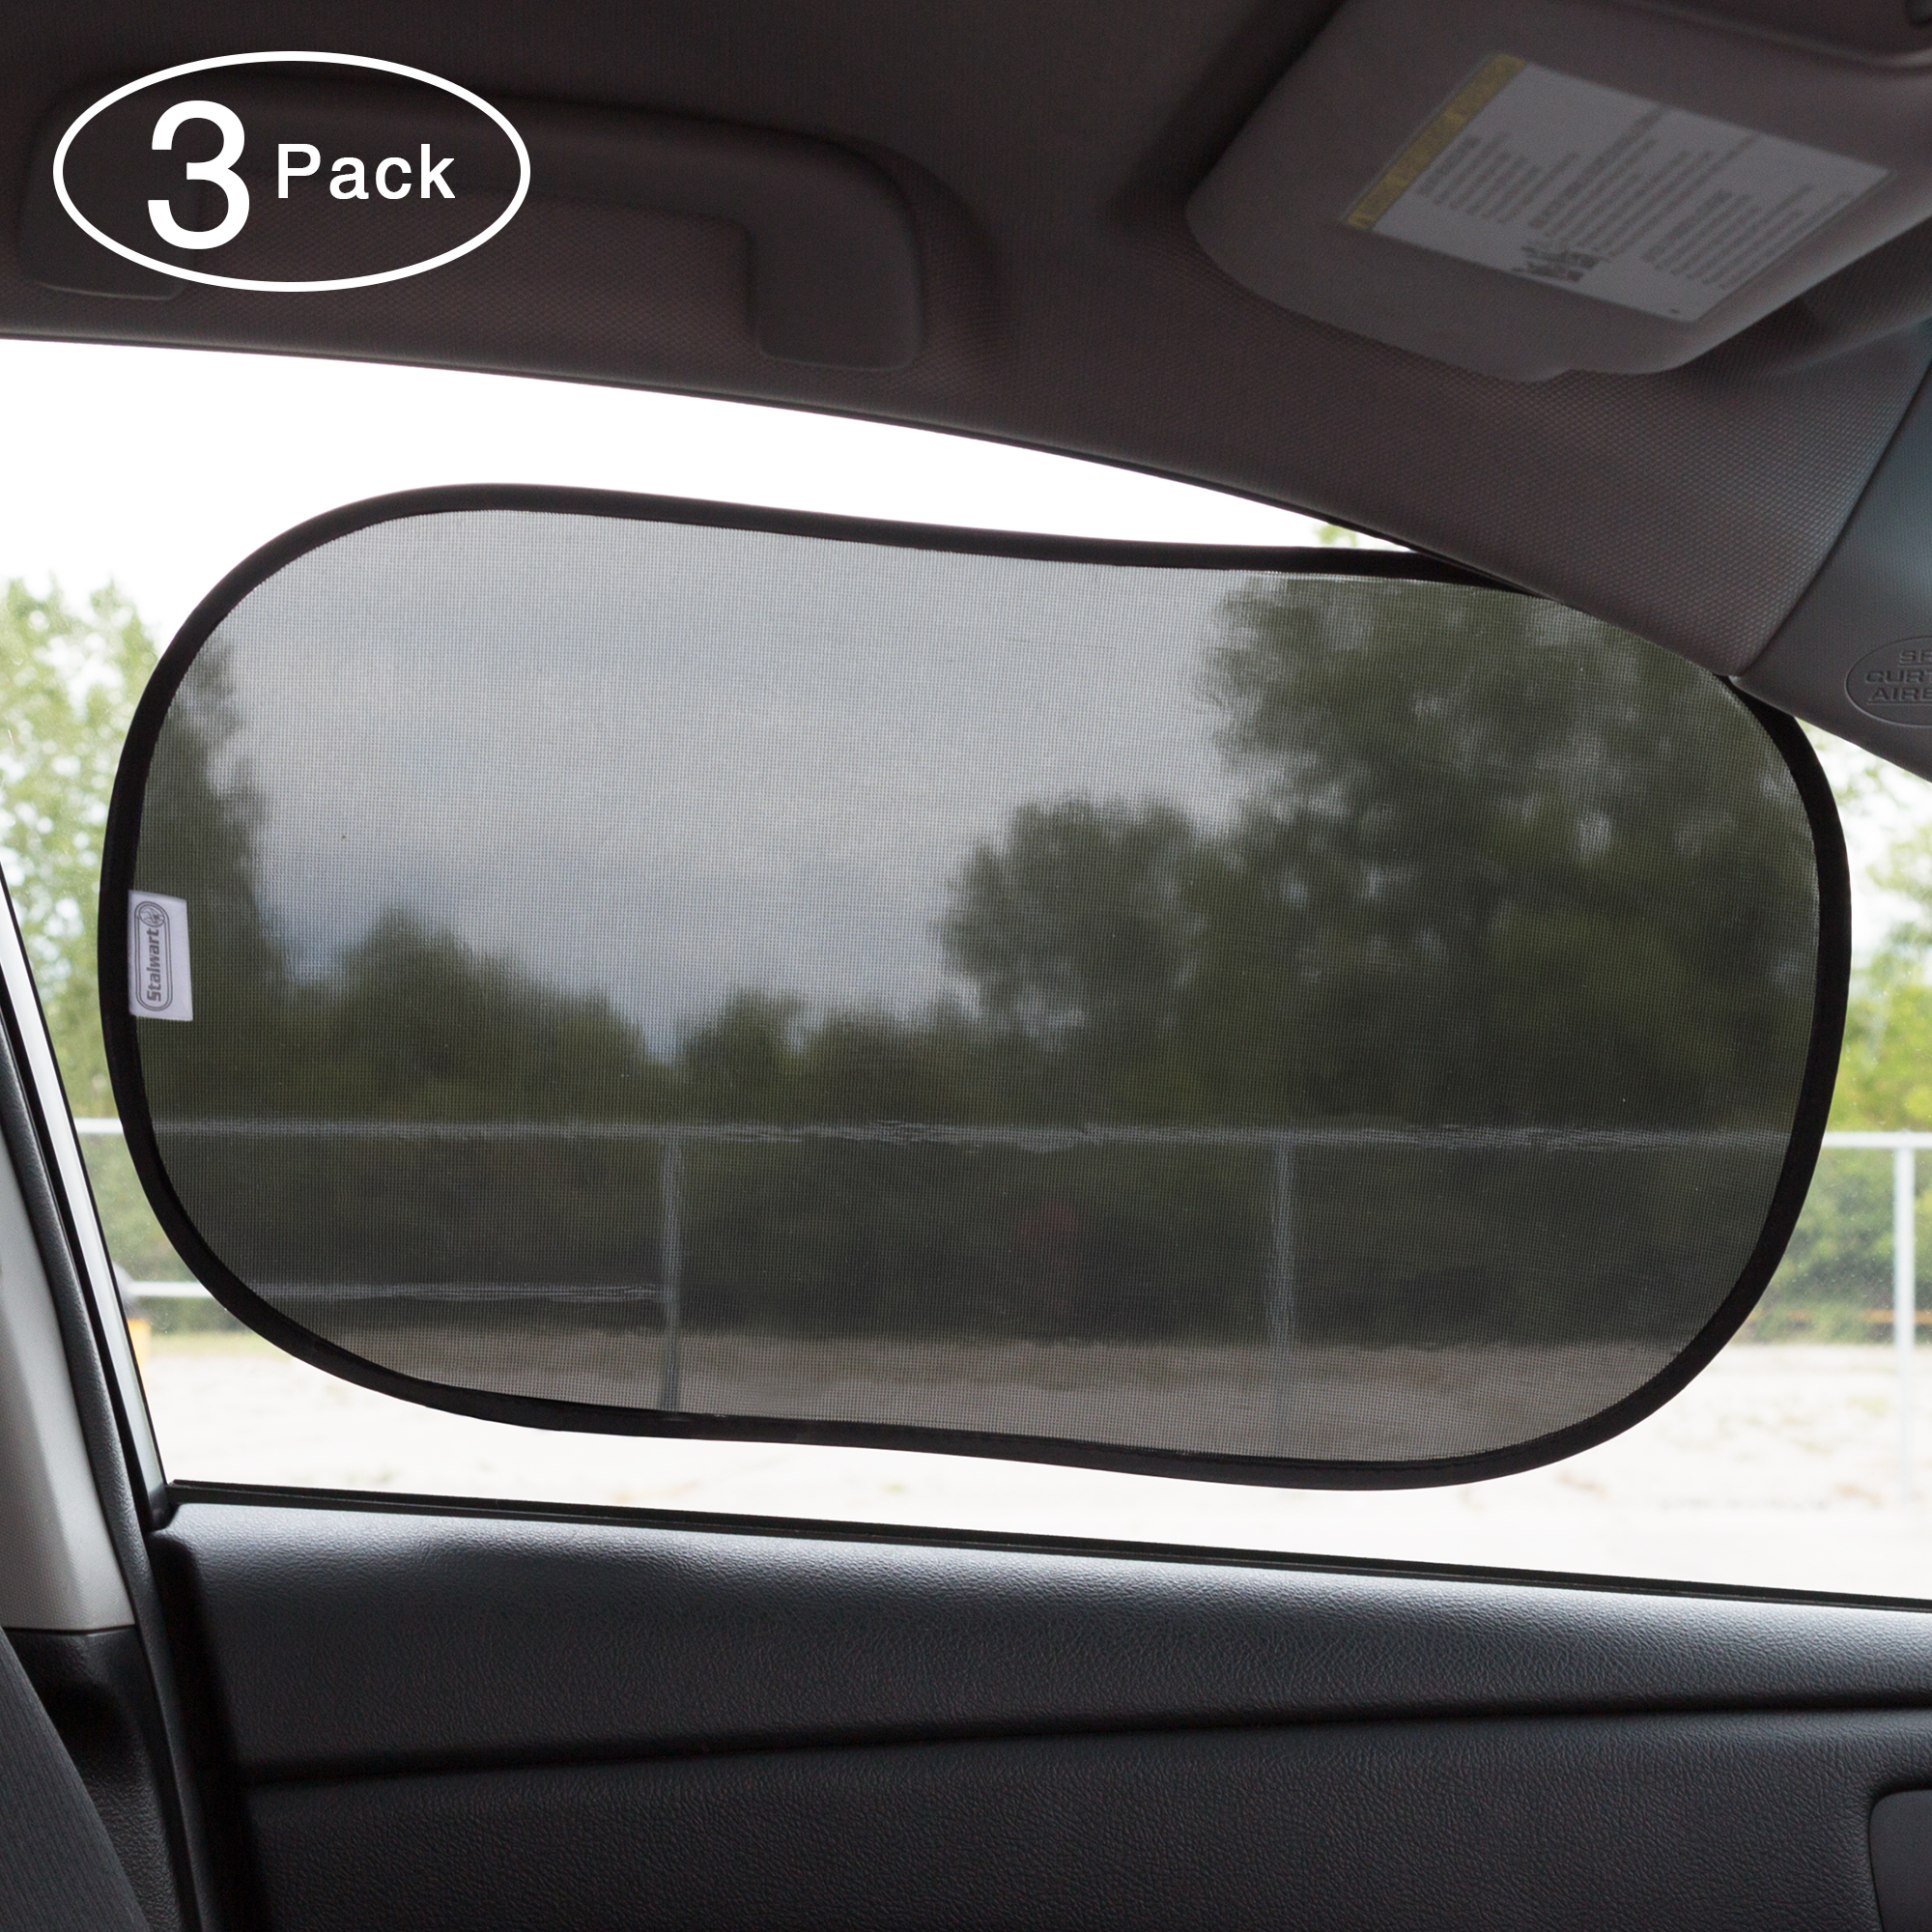 UV and glare protection Jump Baby 2 Pack Baby Car Window Sun Shades Static Cling Technology Baby Products